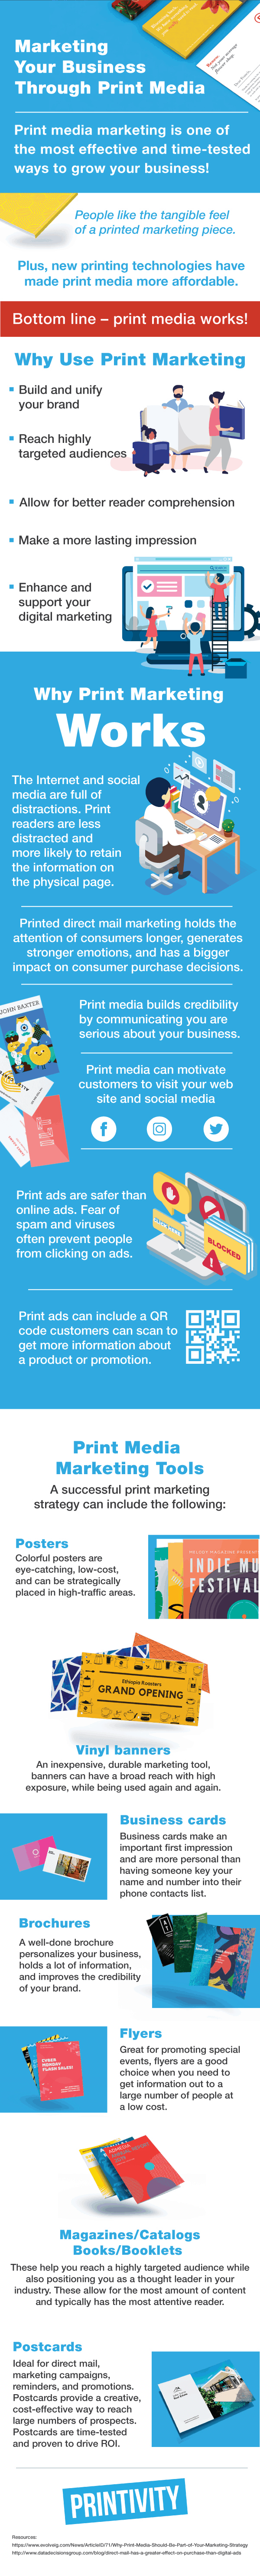 Print media is a successful way to reach customers, present your brand, and support digital marketing. Best products for print marketing is posters, vinyl banners, business cards, brochures, magazine, catalogs, and postcards.